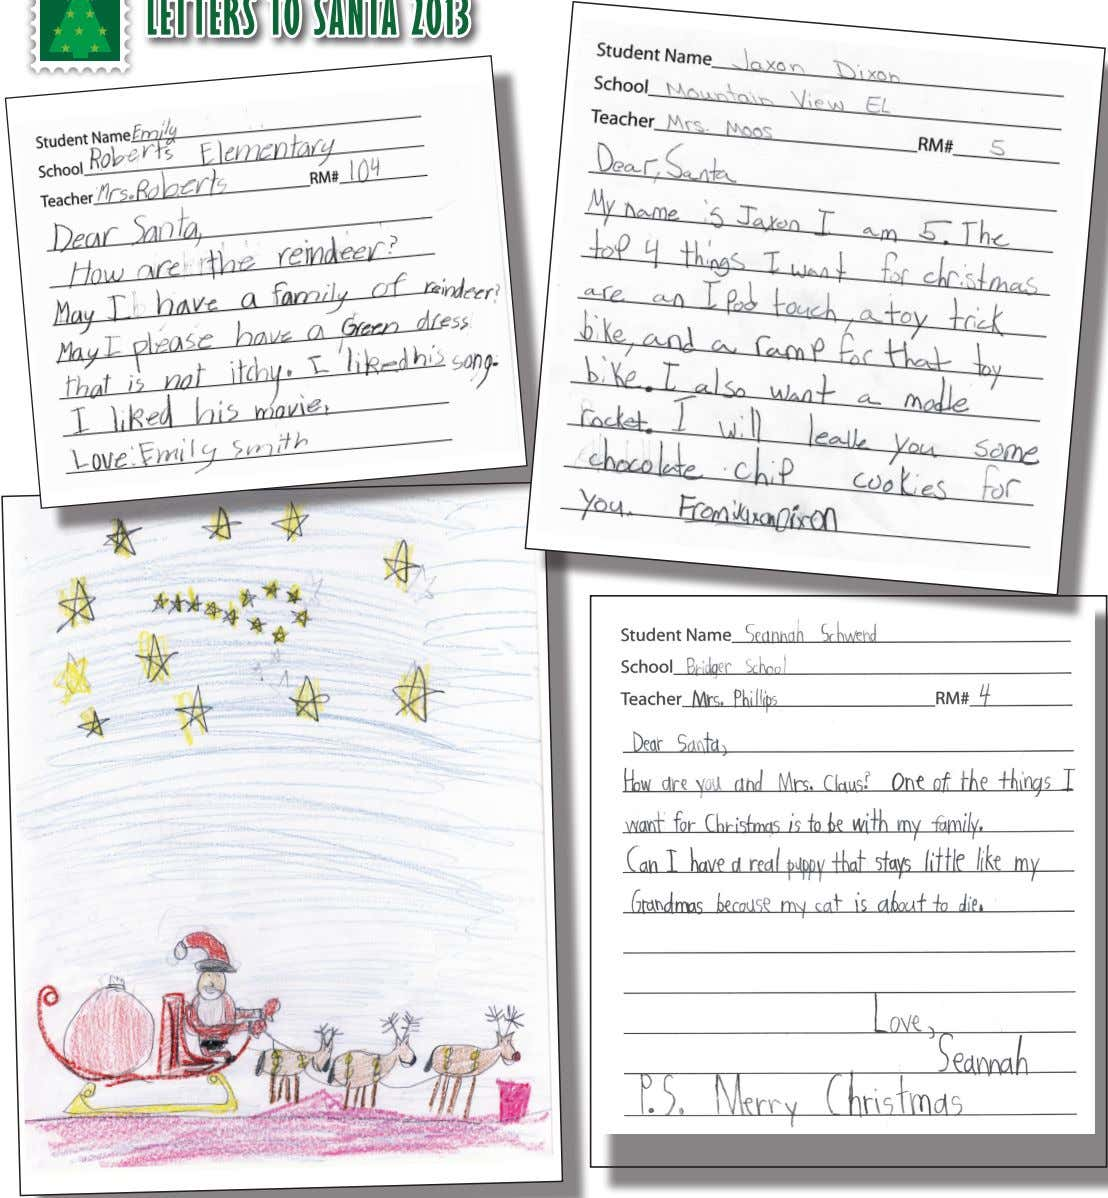 LETTERS TO SANTA 2013 12 — December 19, 2013 A Special publication of The Carbon County